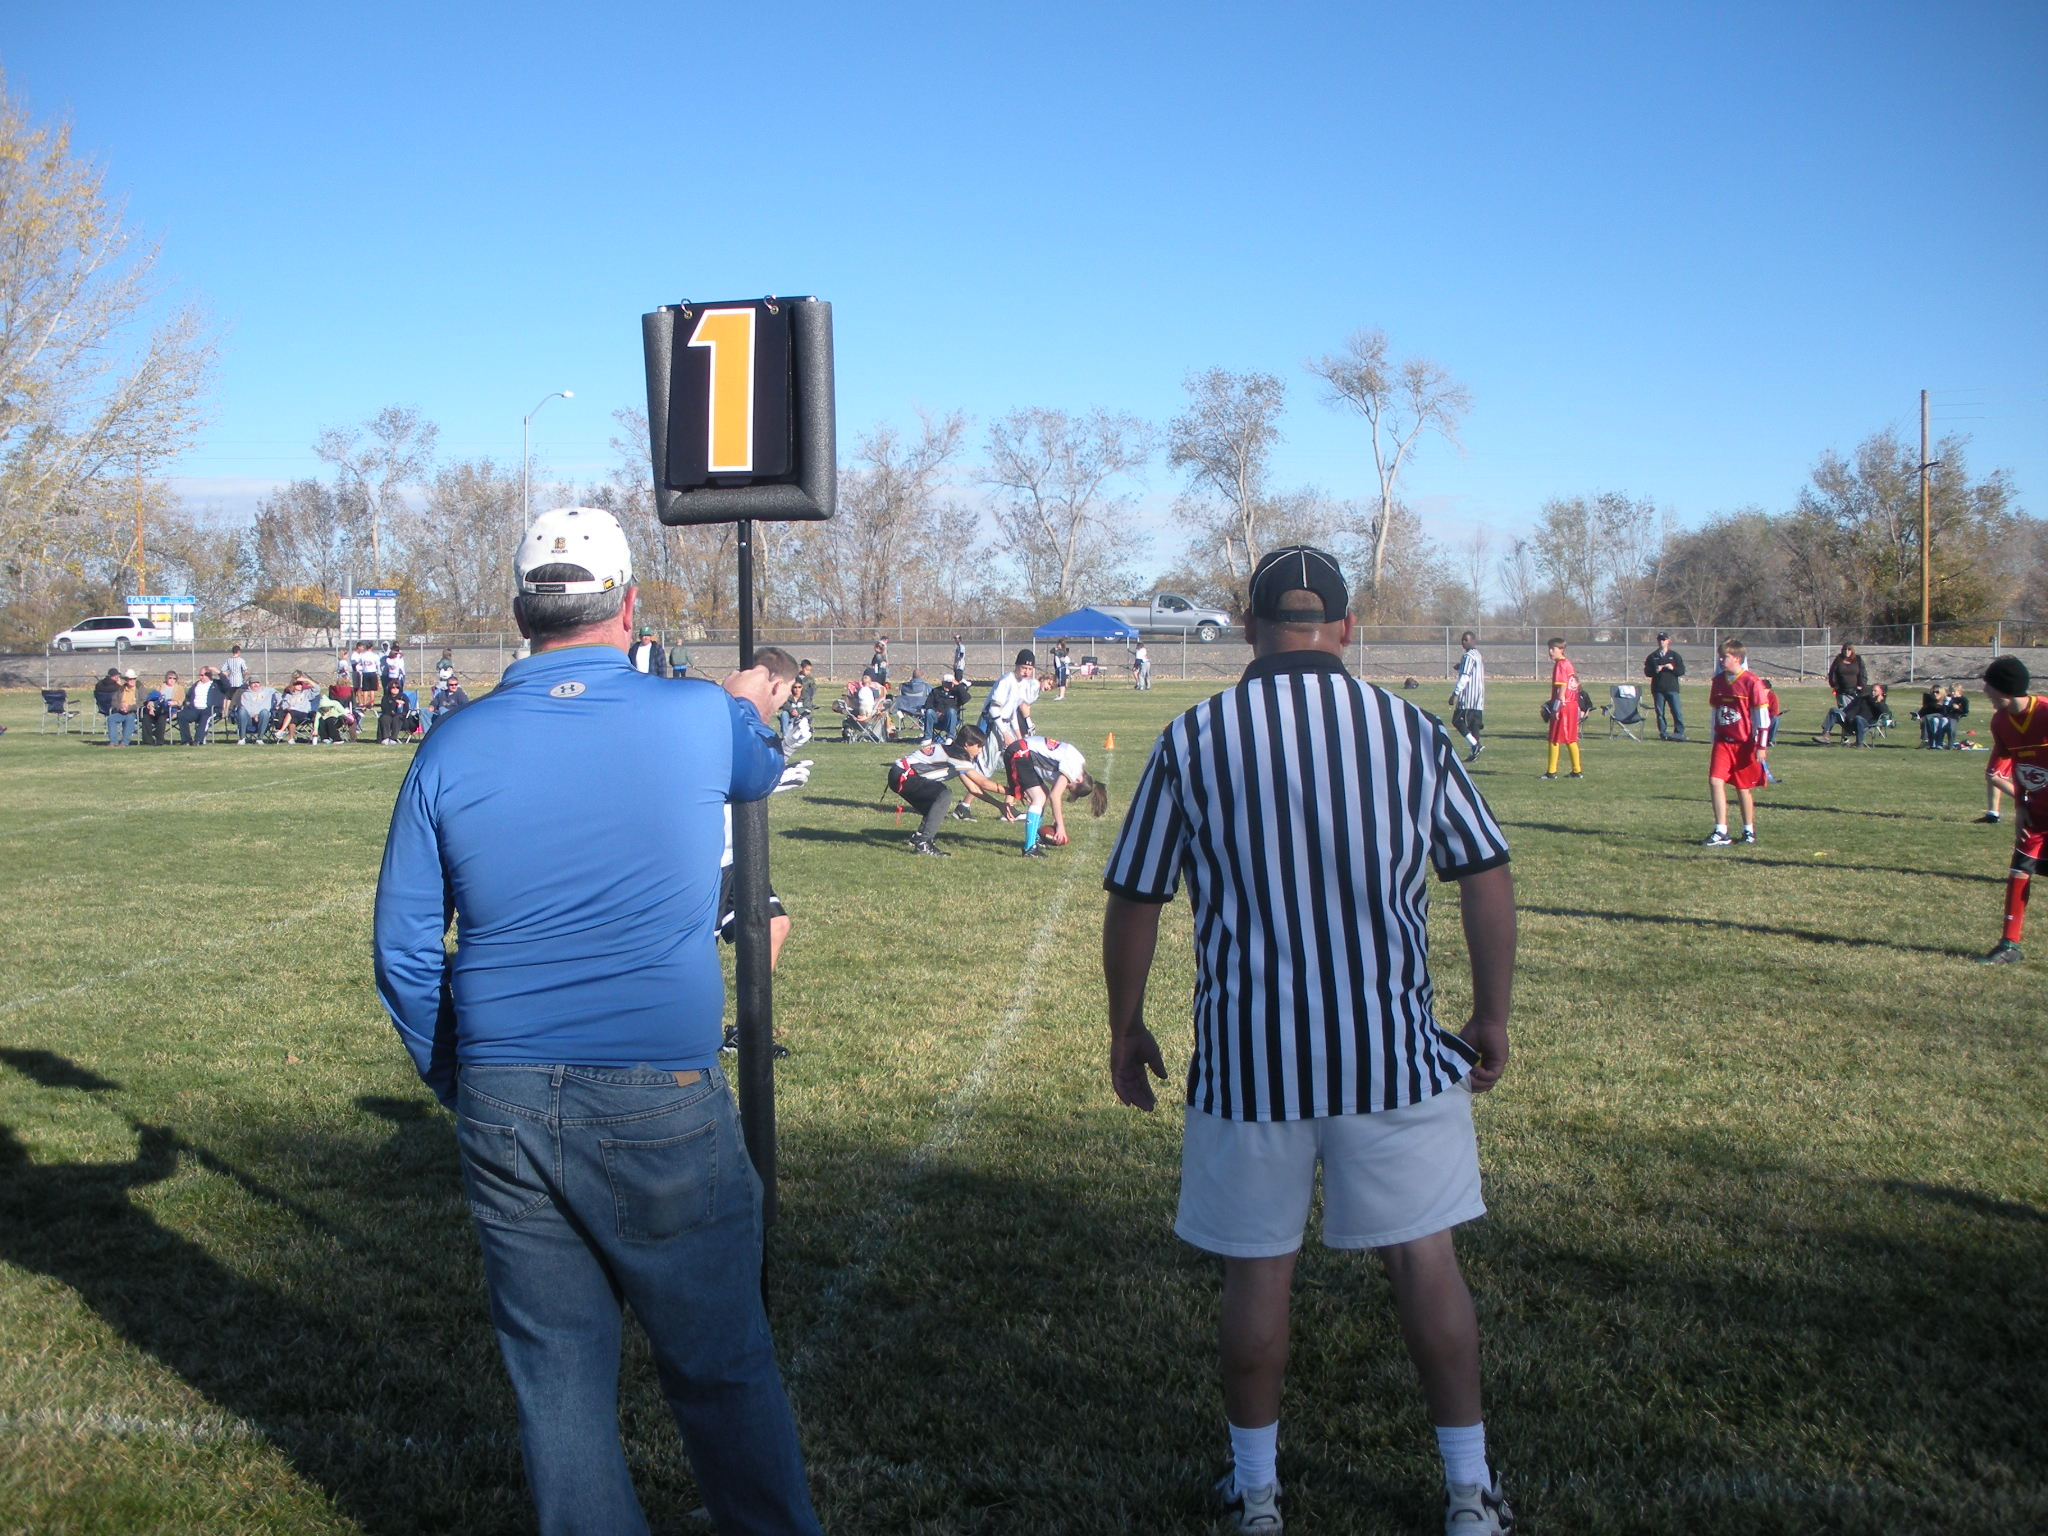 Officials at Soccer Game